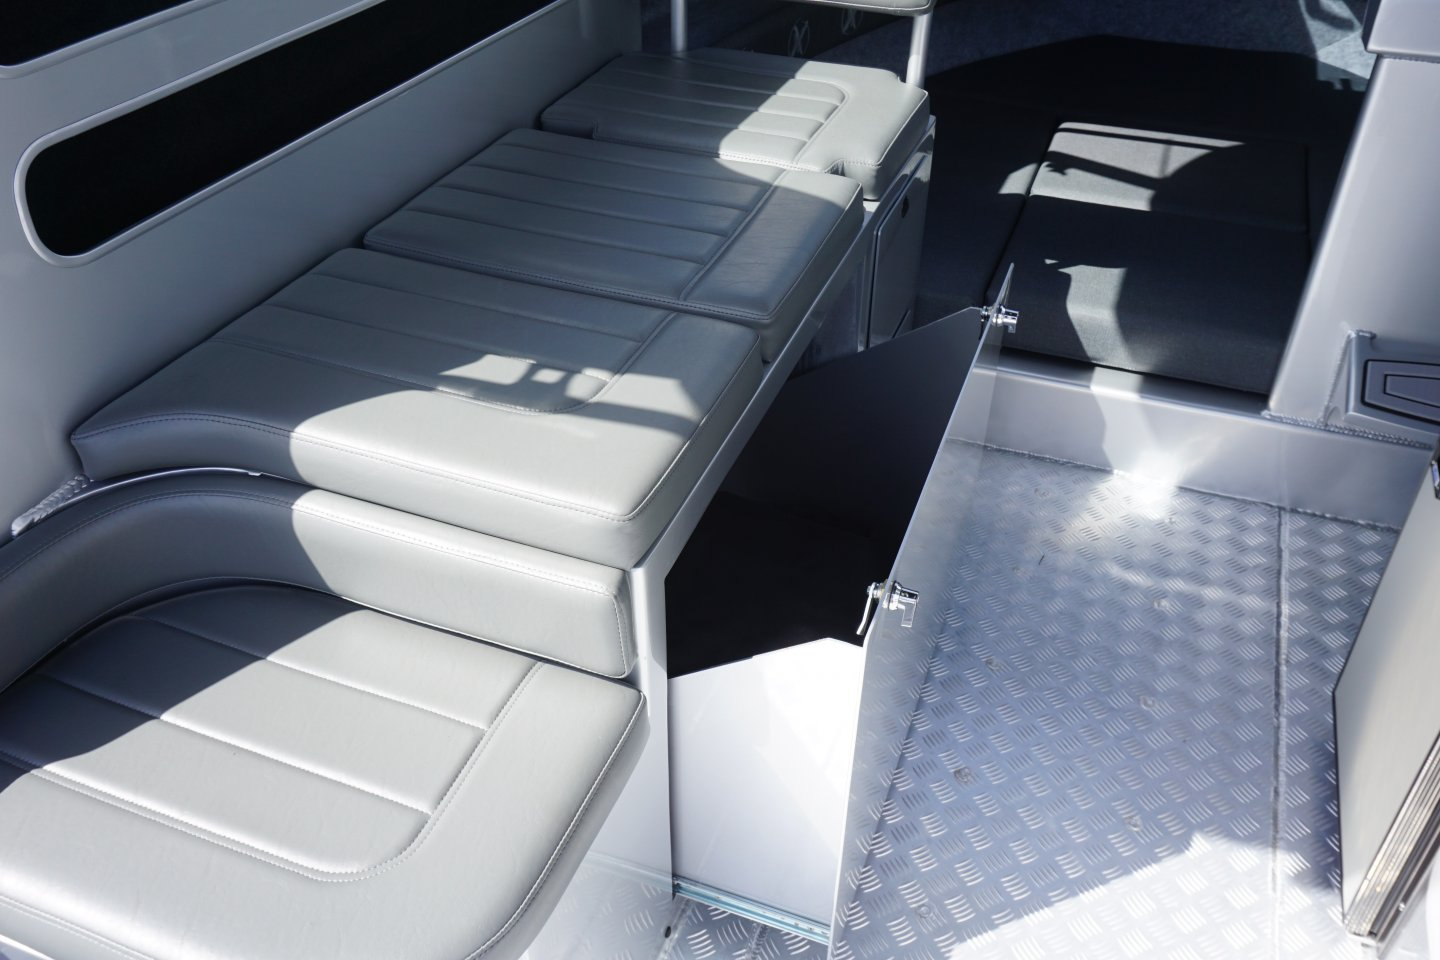 Extreme seating modules with fridge draw